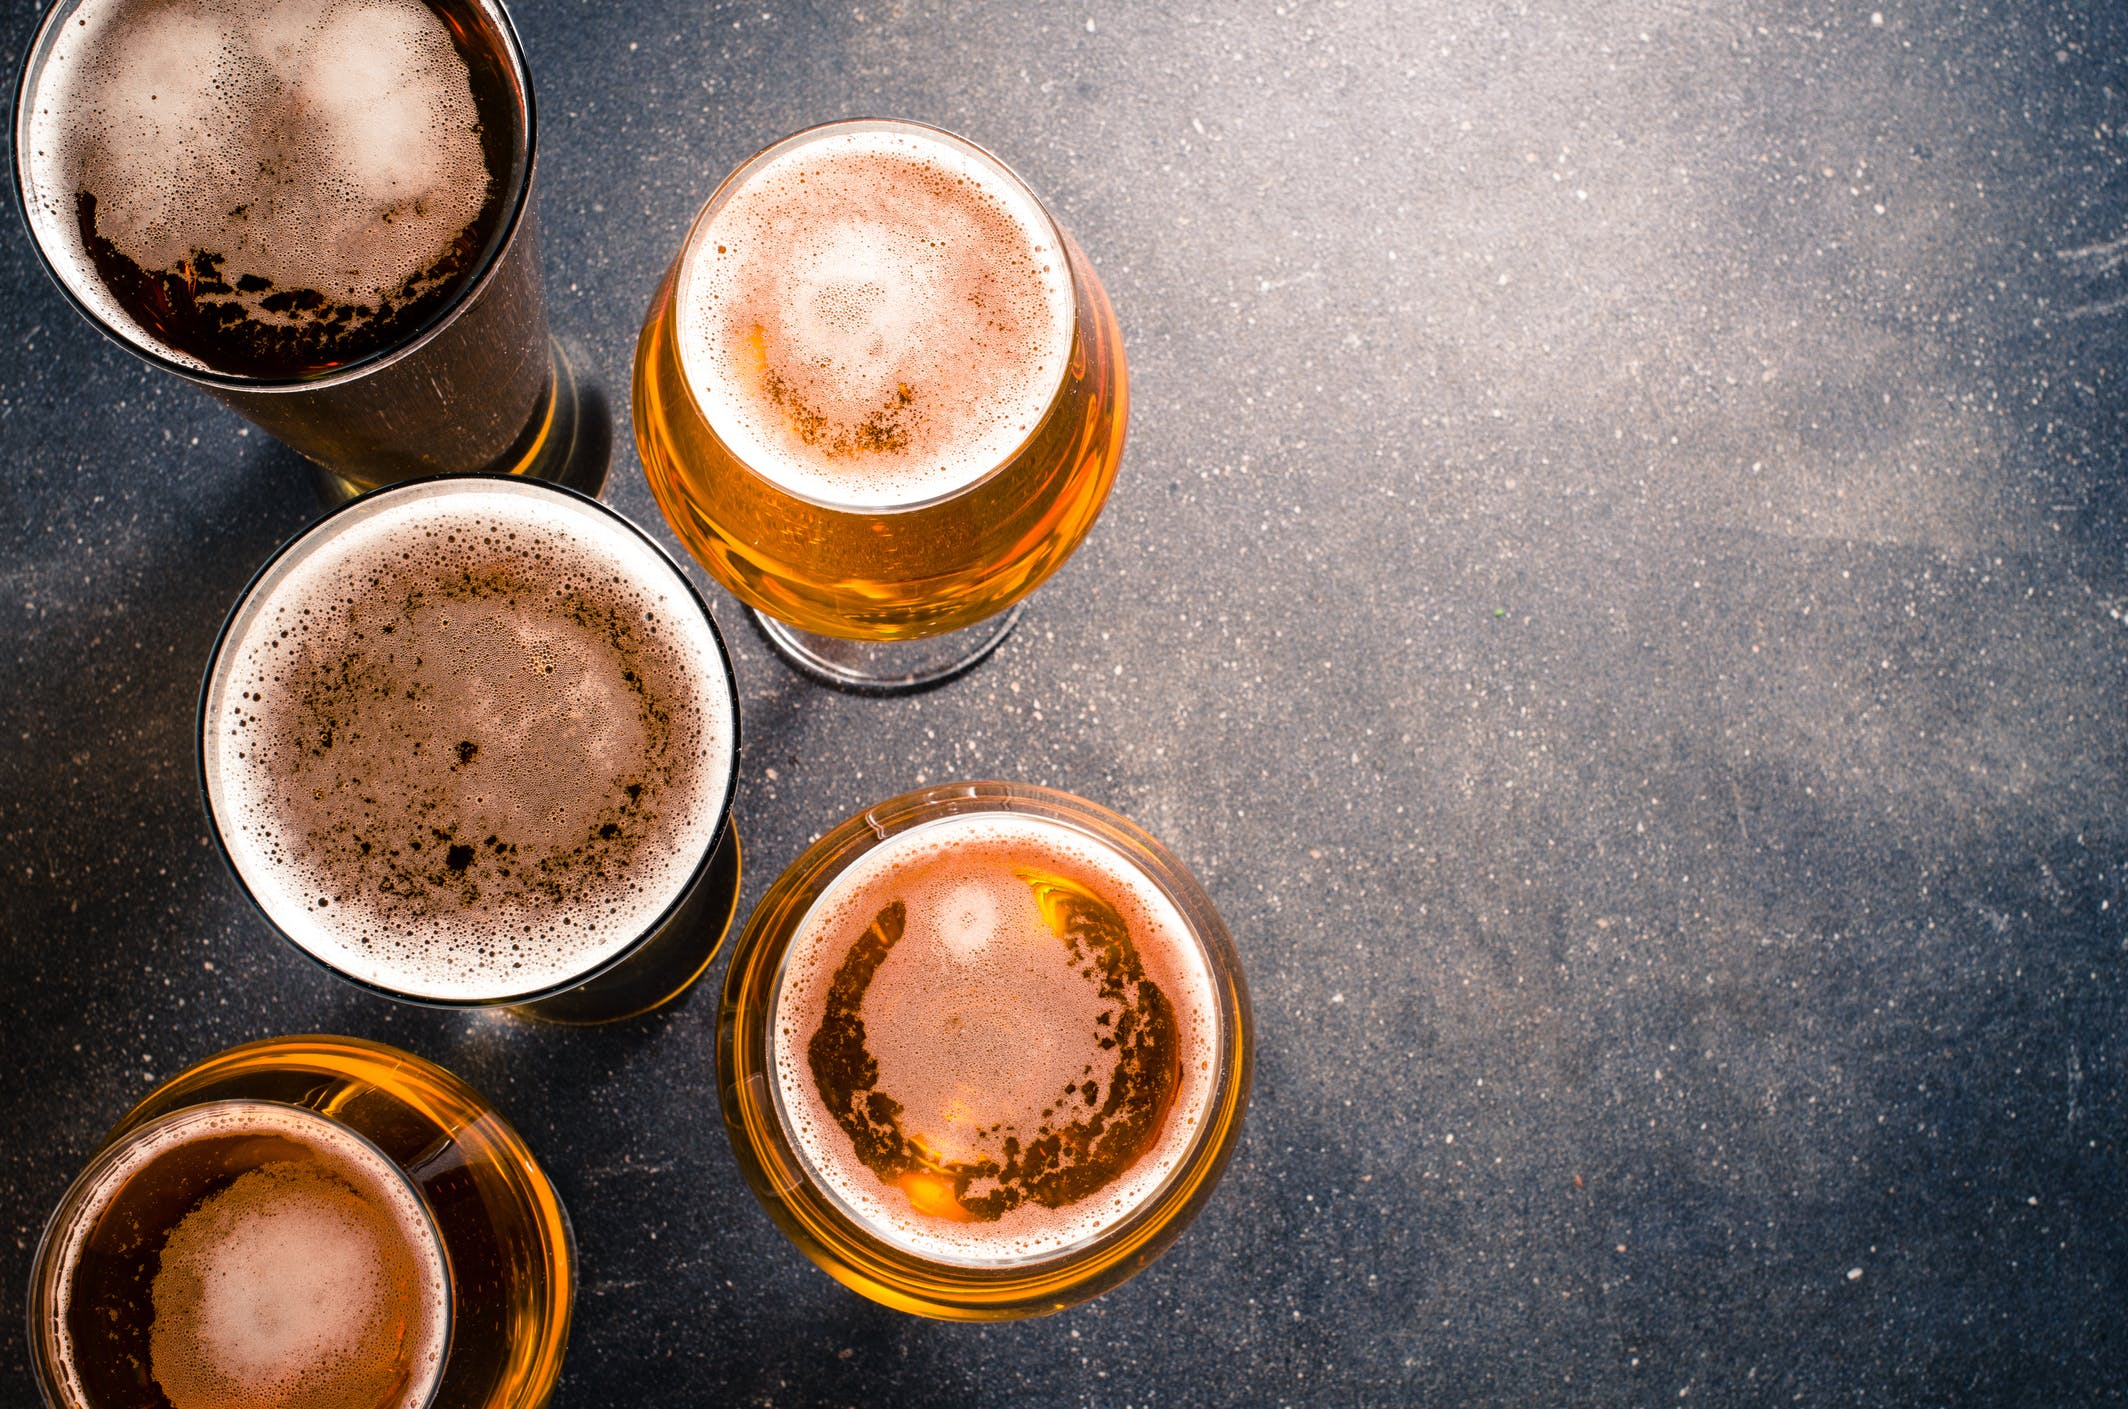 The low-carb beer experiment: Can you drink beer and stay in ketosis?